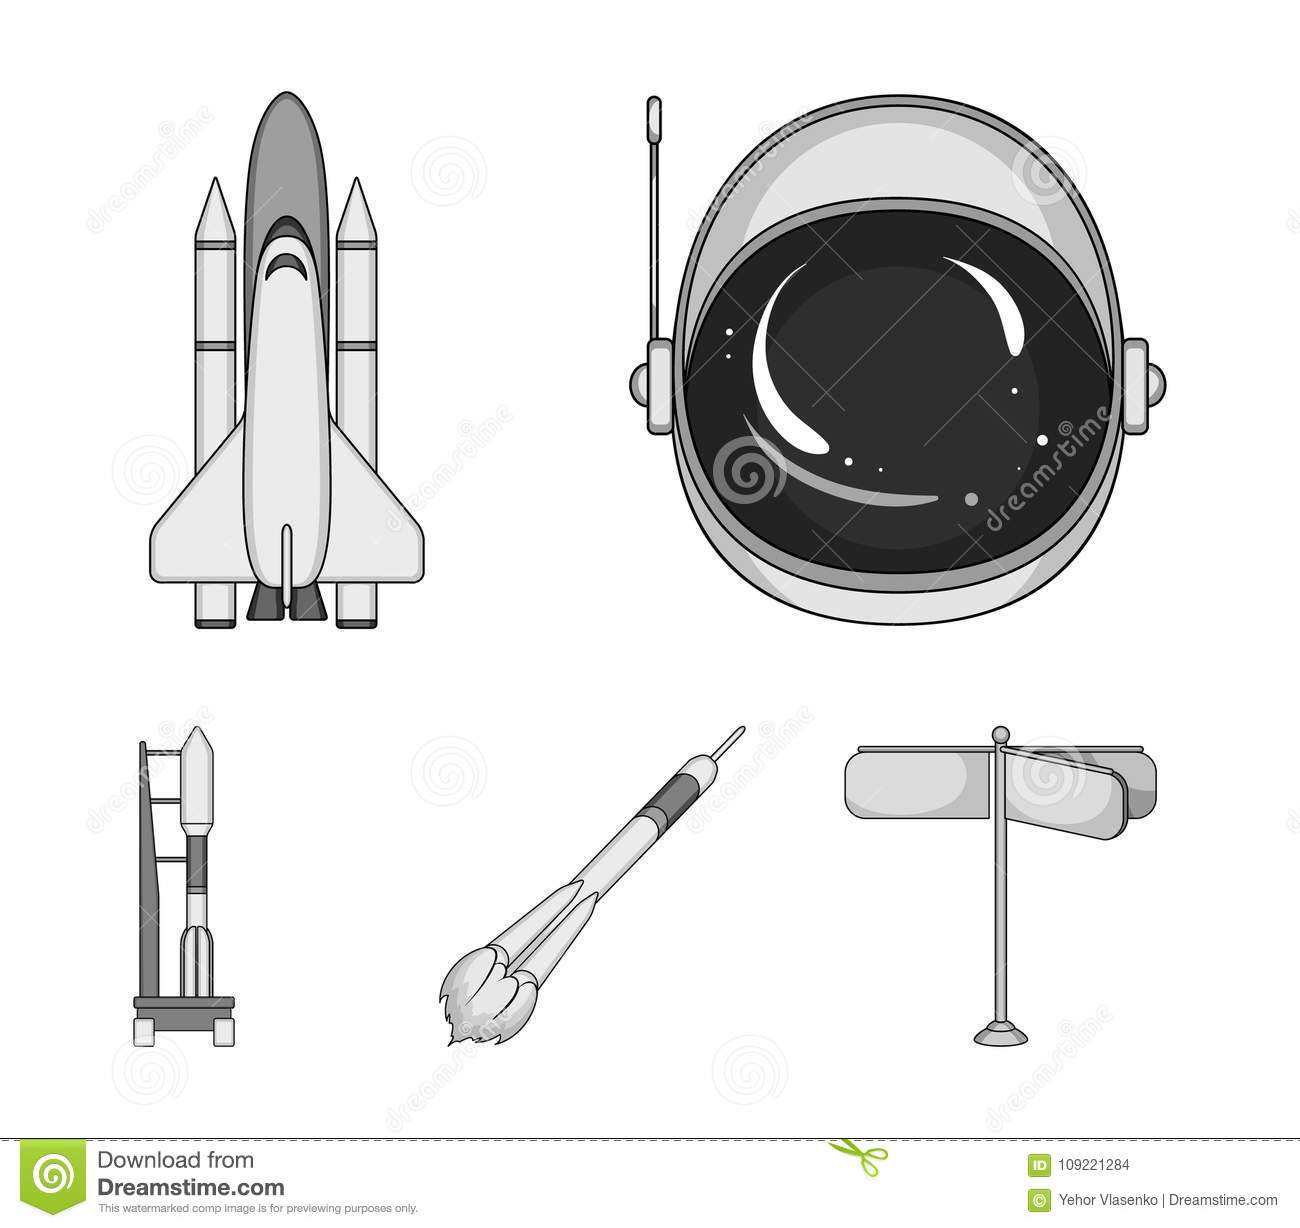 spaceship space cargo shuttle launch pad astronaut s helmet space technology set collection icons spaceship 109221284 a spaceship in space, a cargo shuttle, a launch pad, an astronaut`s